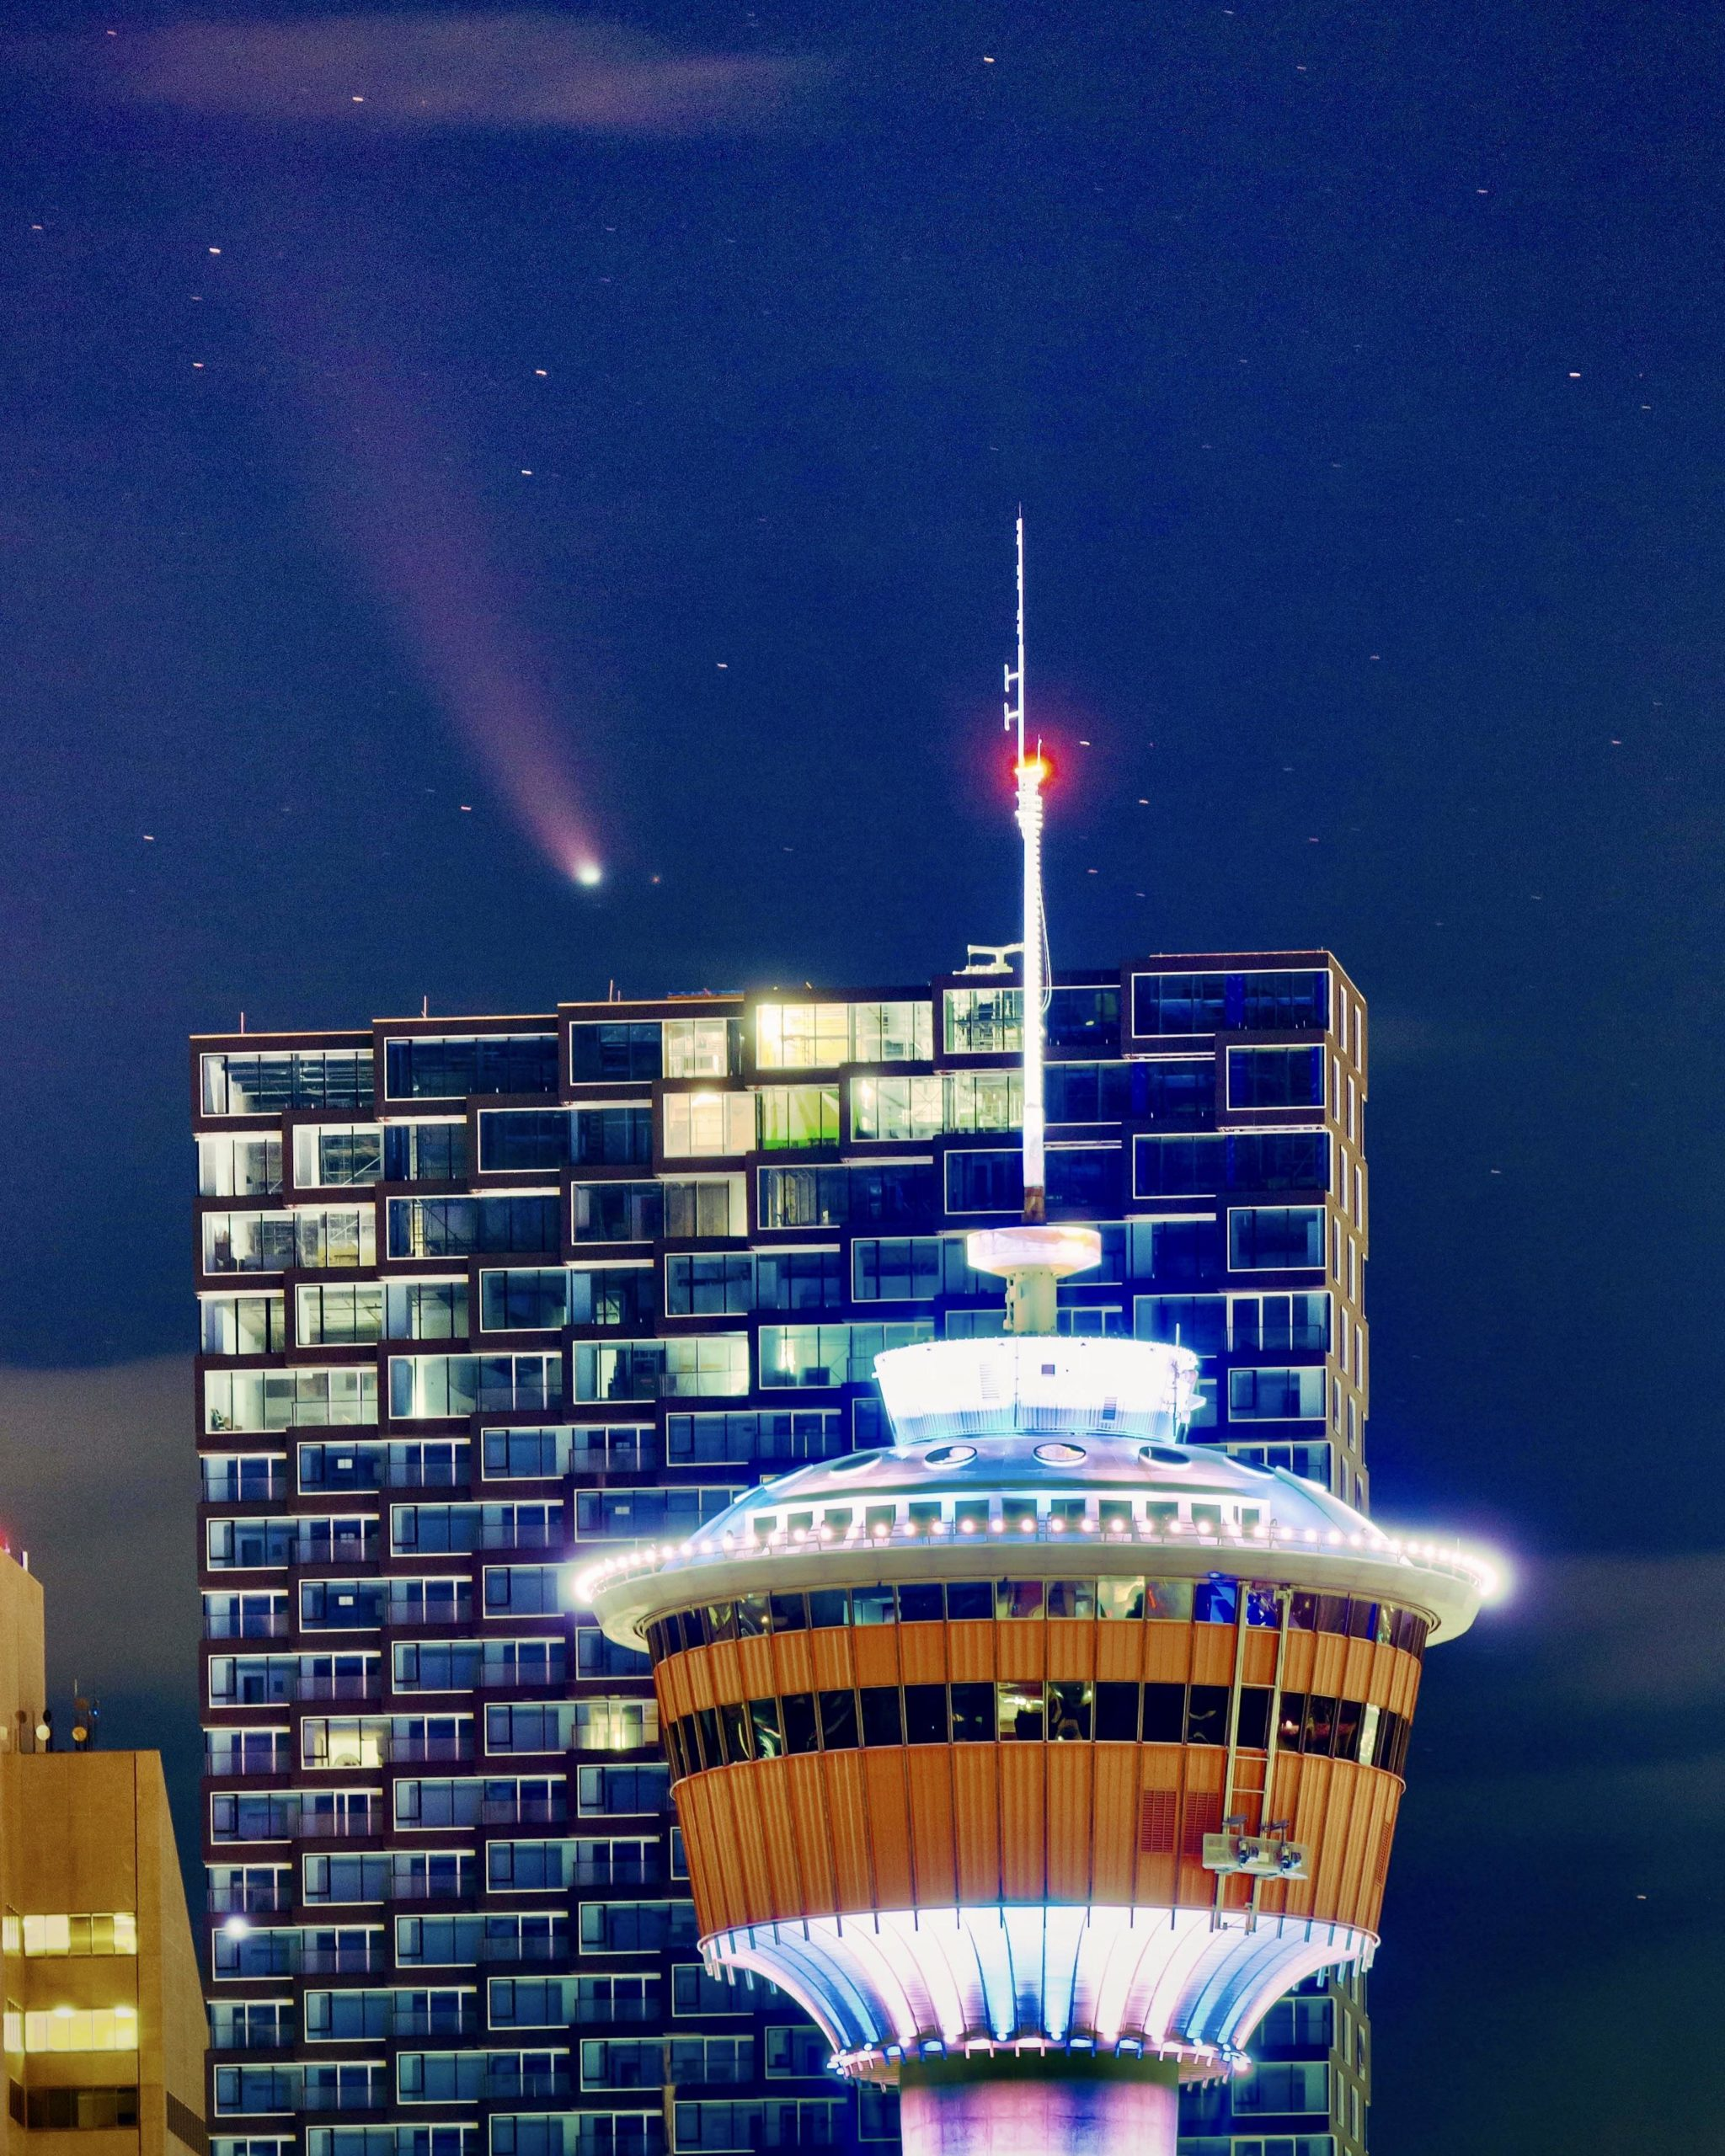 caught a comet in the sky over the Calgary tower in July